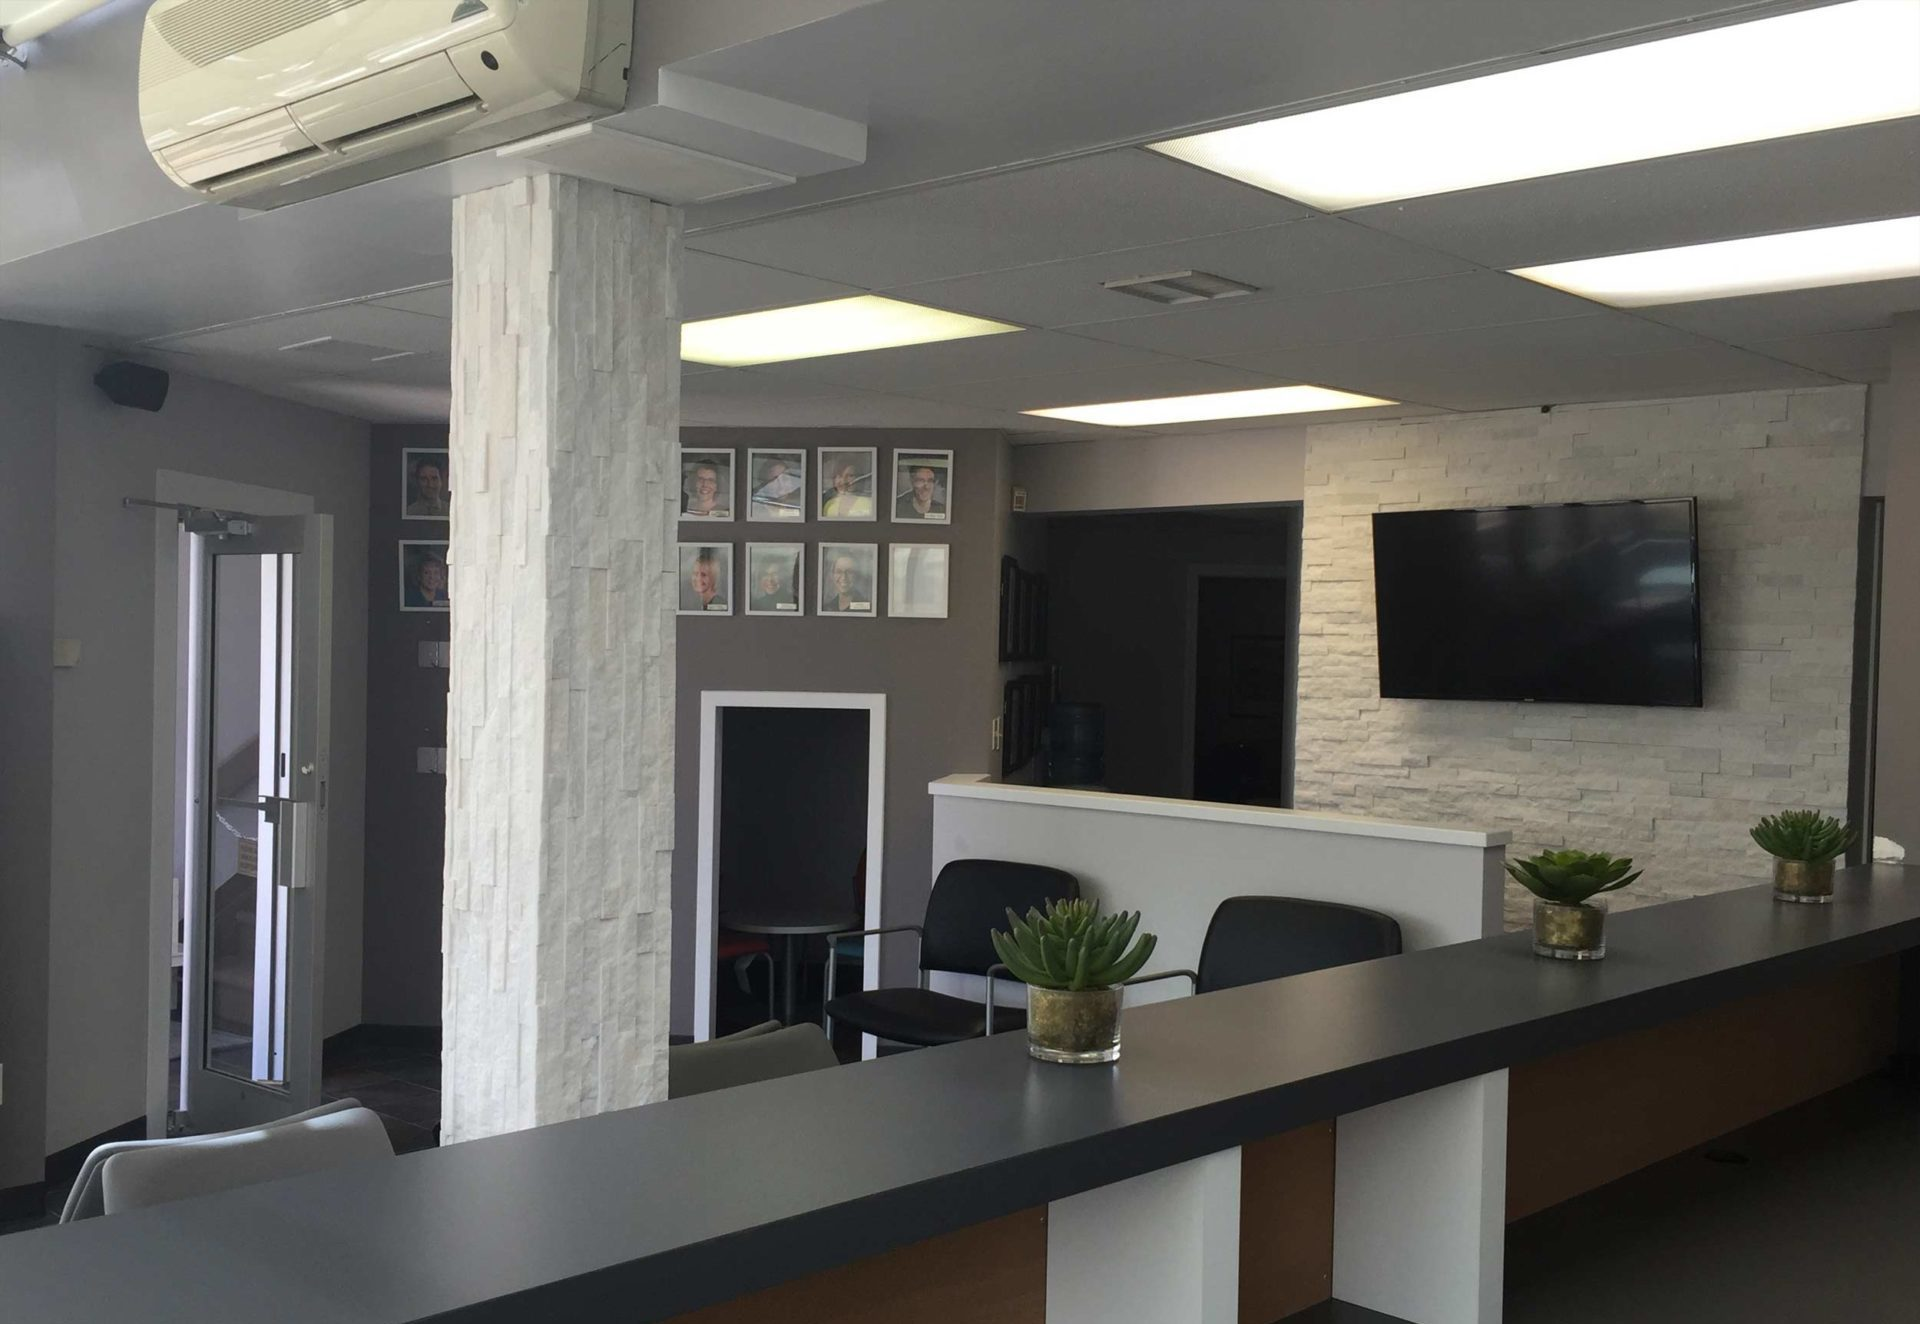 Dental Clinic Interior Designing Project In Edmonton